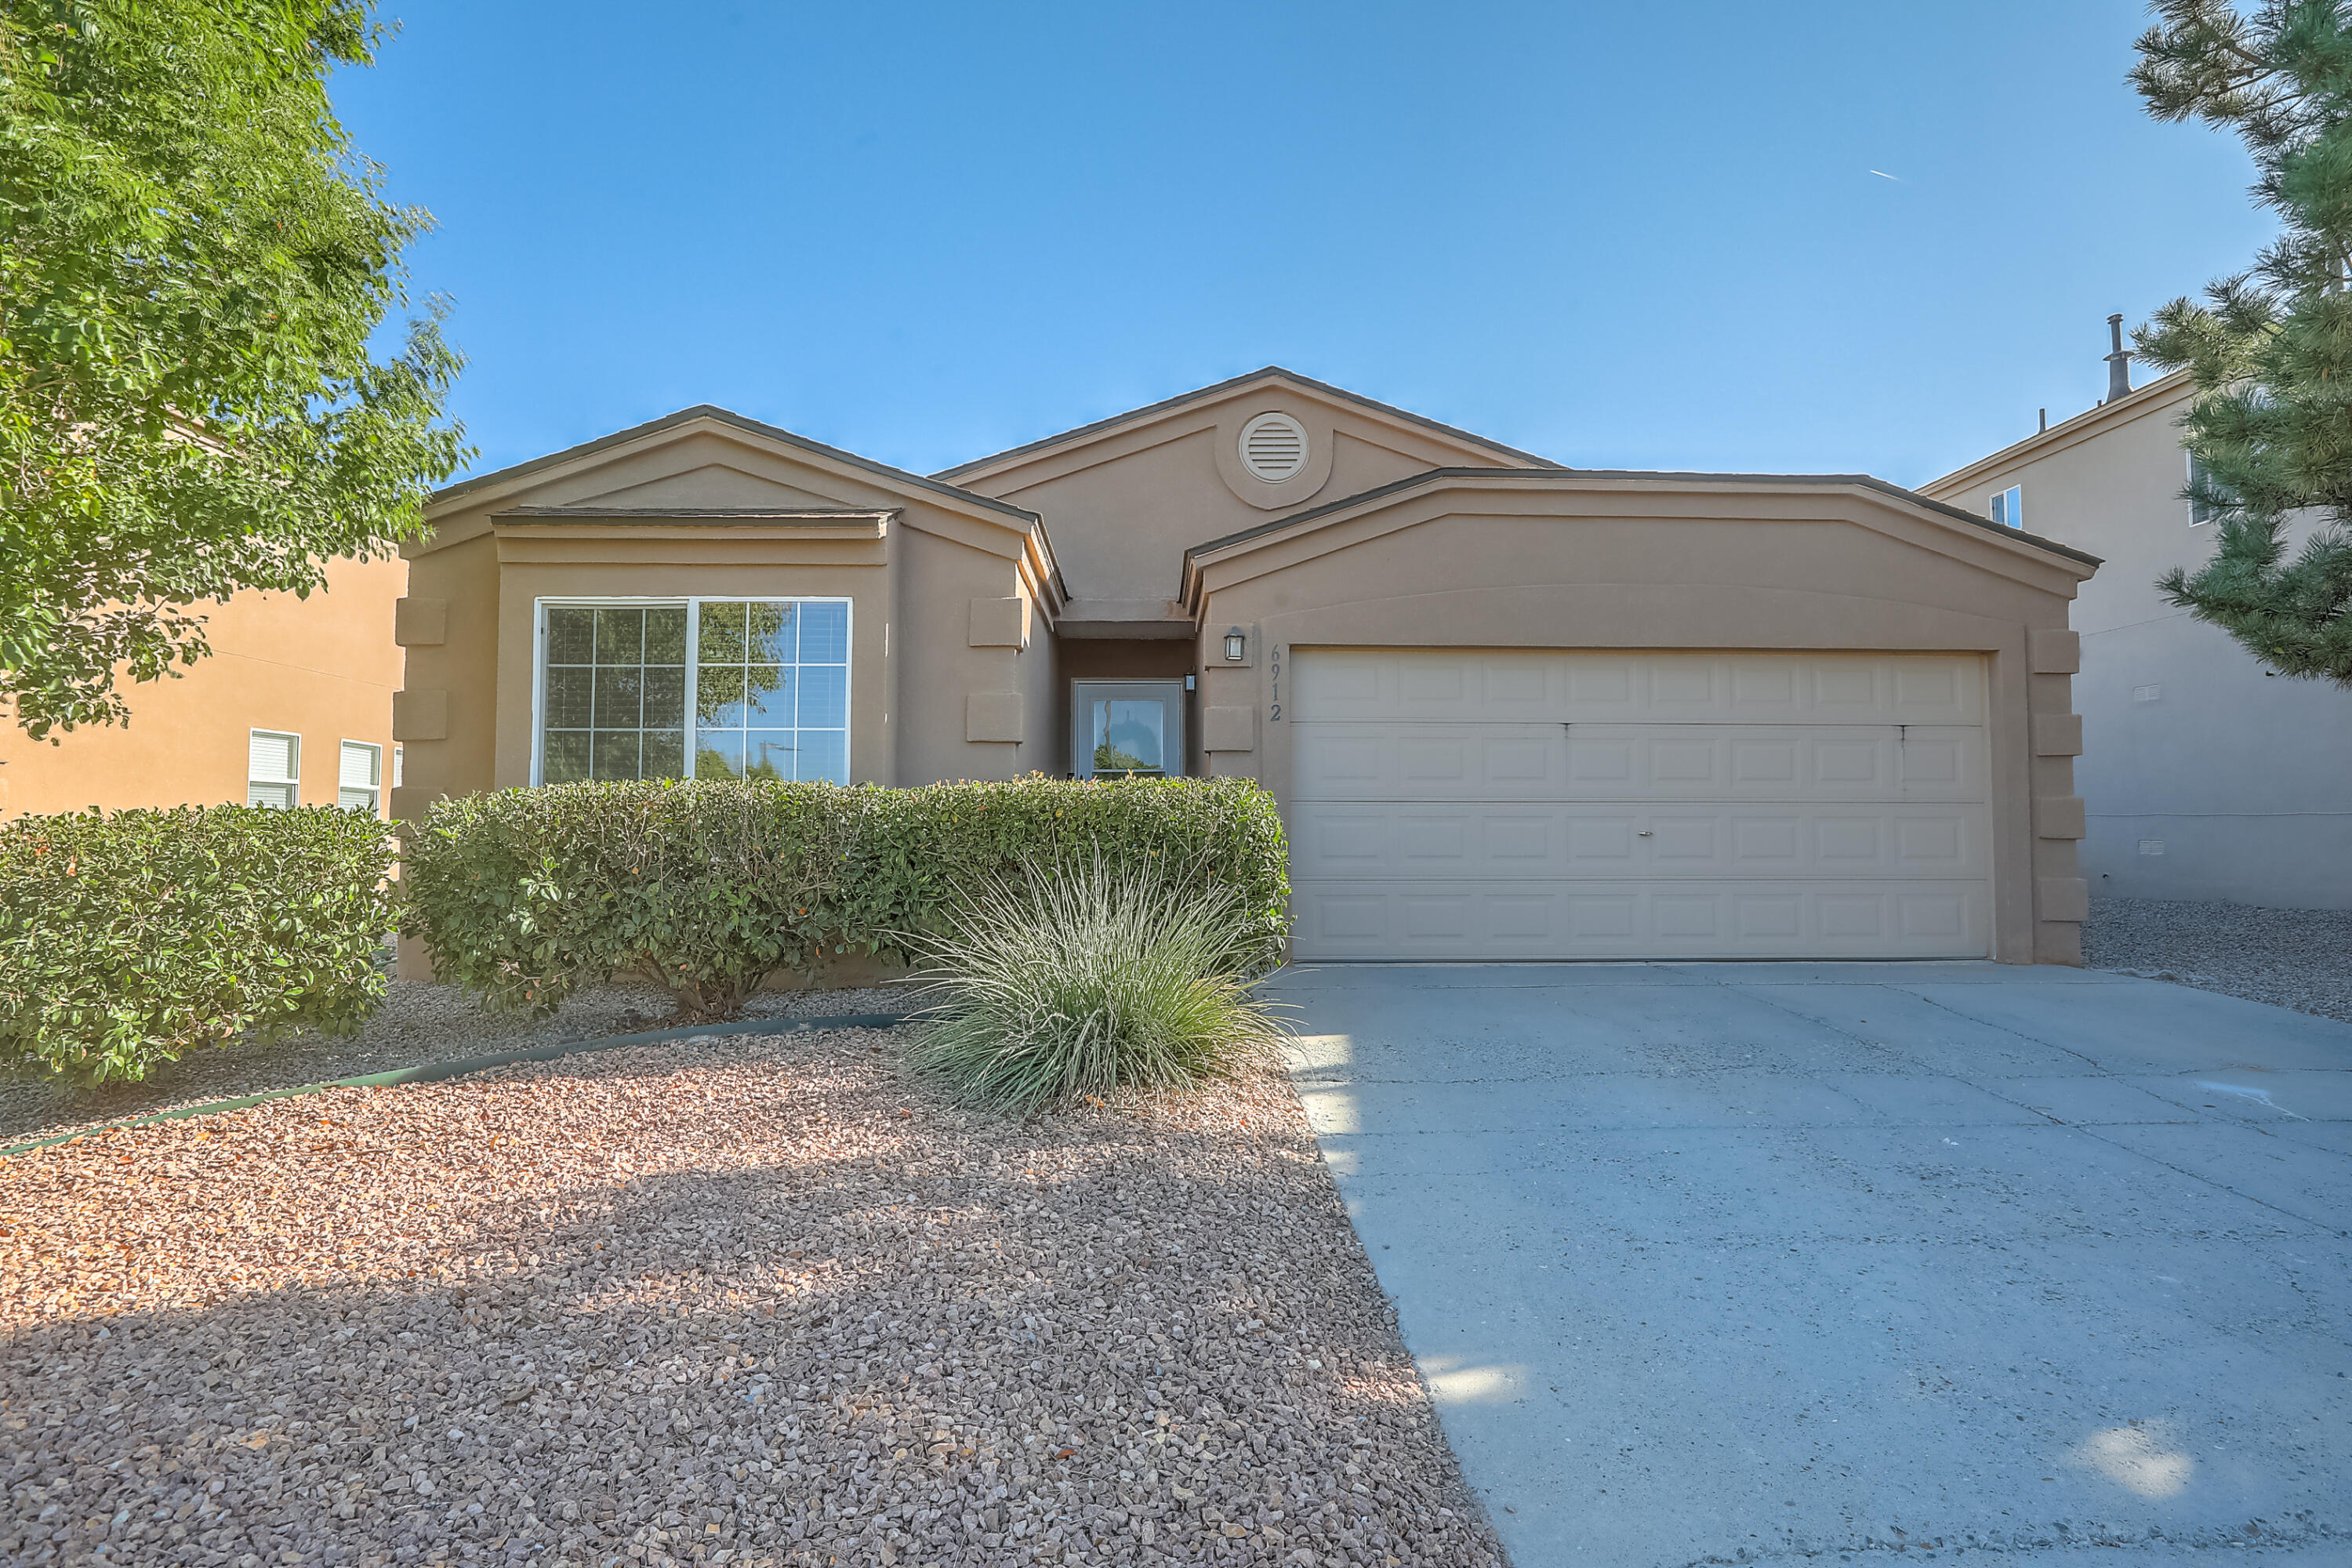 Wow, this just might be your dream home in Ventana Ranch. Remodeled with Joanna Gaines flair and design, you are sure to fall in love.  Enjoy the beautiful kitchen that offers stainless steel appliances, granite counter tops, eat in breakfast nook, and wood grain tile floor. The massive living room can also house a formal dining room. The primary bedroom is spacious and includes an updated en-suite featuring dbl sinks, granite counter tops, and a large walk in closet. The additional two bedrooms are well sized. The guest bathroom has also been updated! So many wonderful items including refrigerated air conditioning, laminate and tile flooring throughout, & newer paint throughout.  This is Ventana Ranch living at its finest.